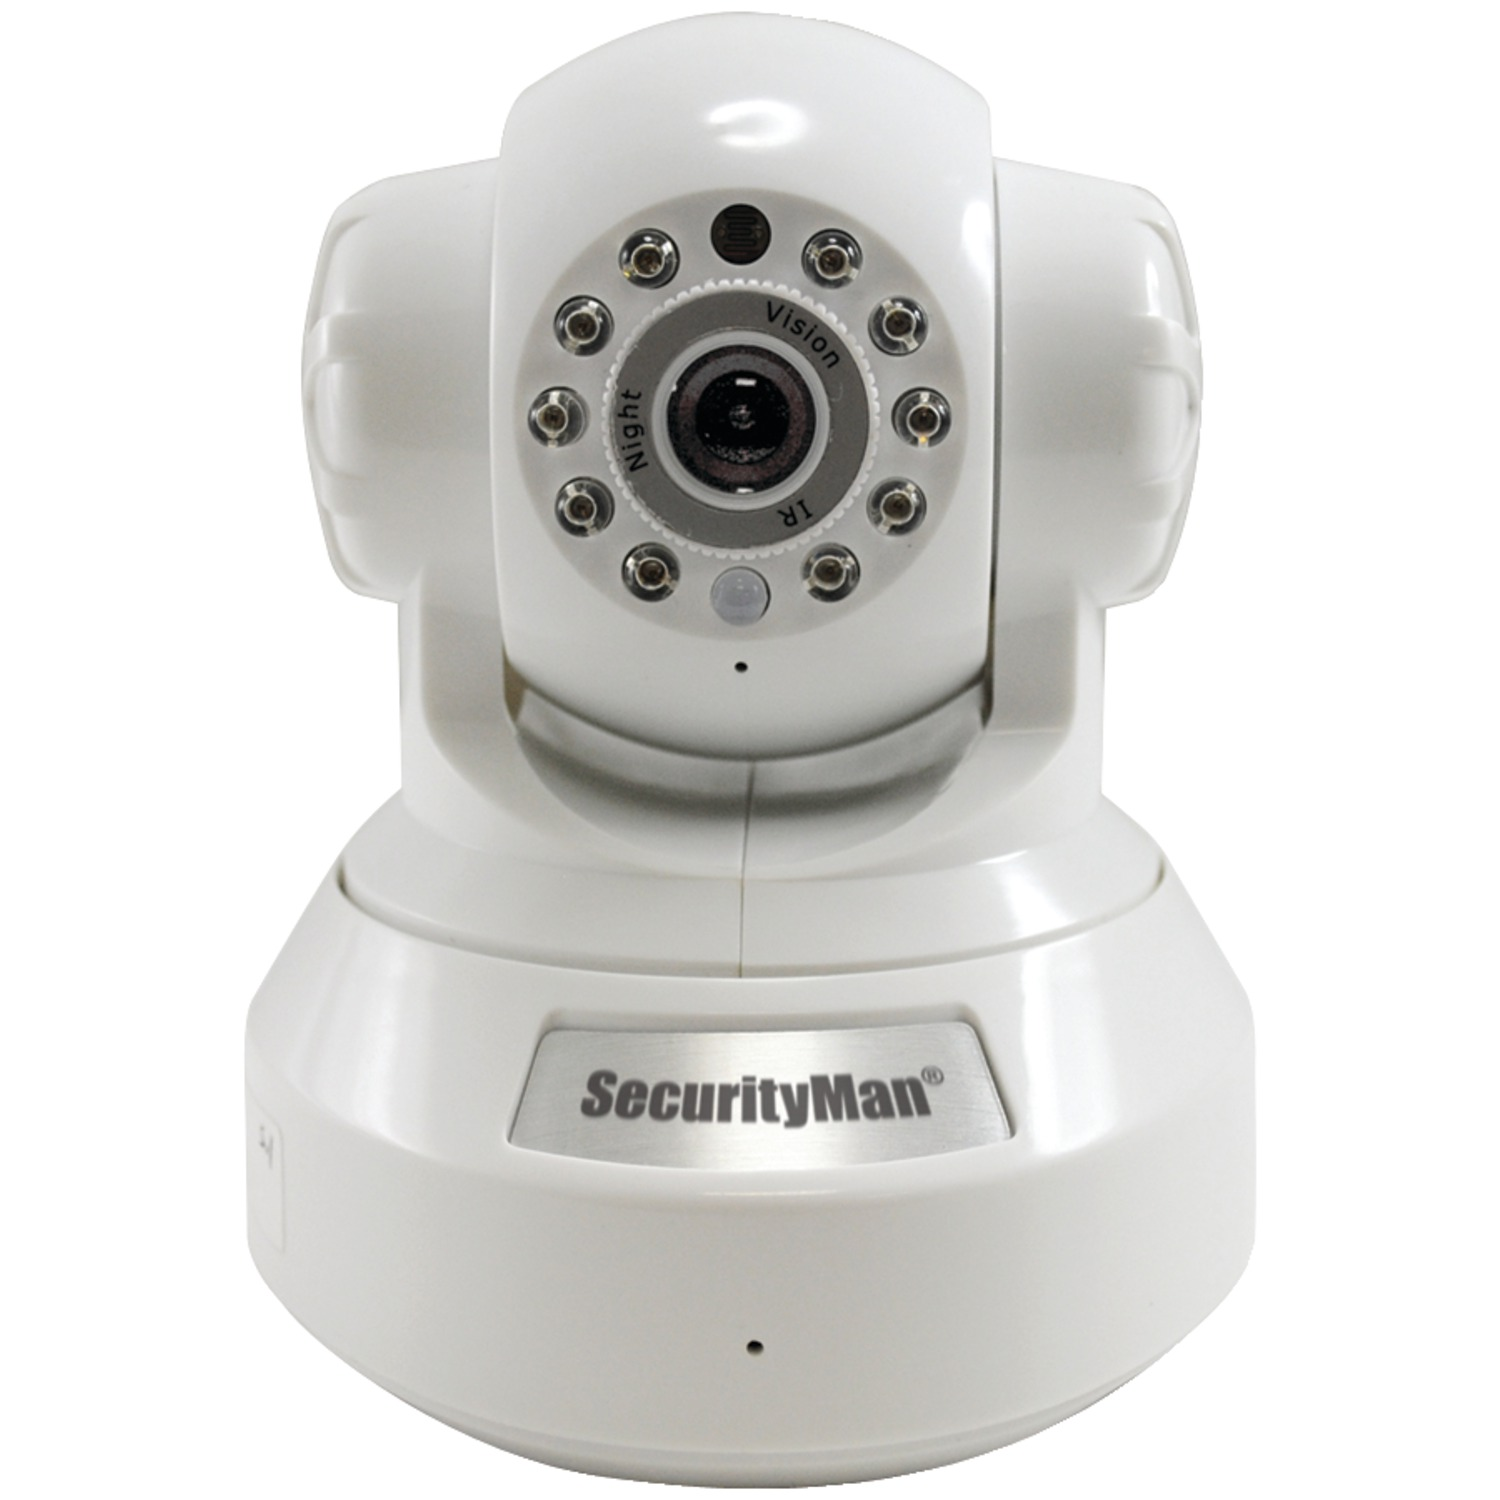 Diy Home Security Camera Reviews Security Man Ipcam Sd Diy Wireless Wired Ip Camera